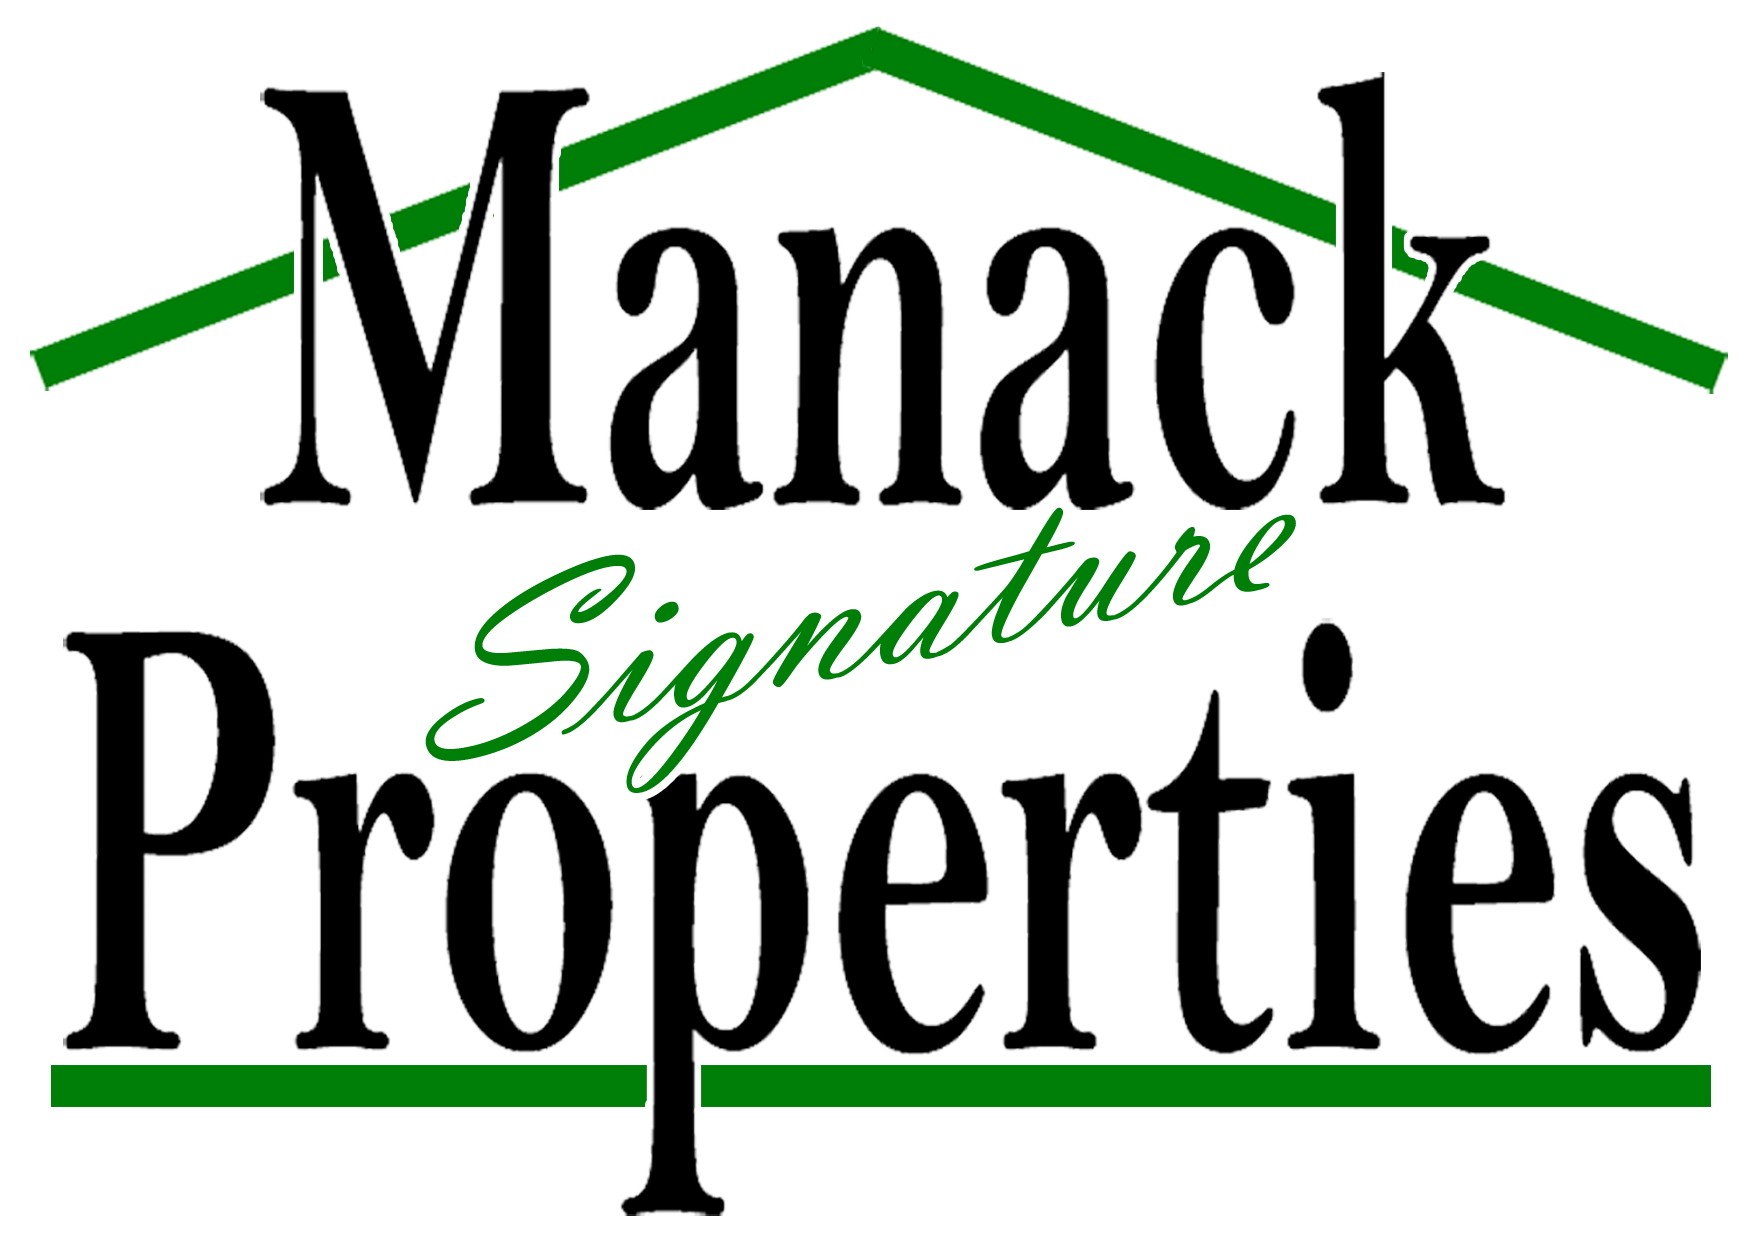 Manack Signature Properties